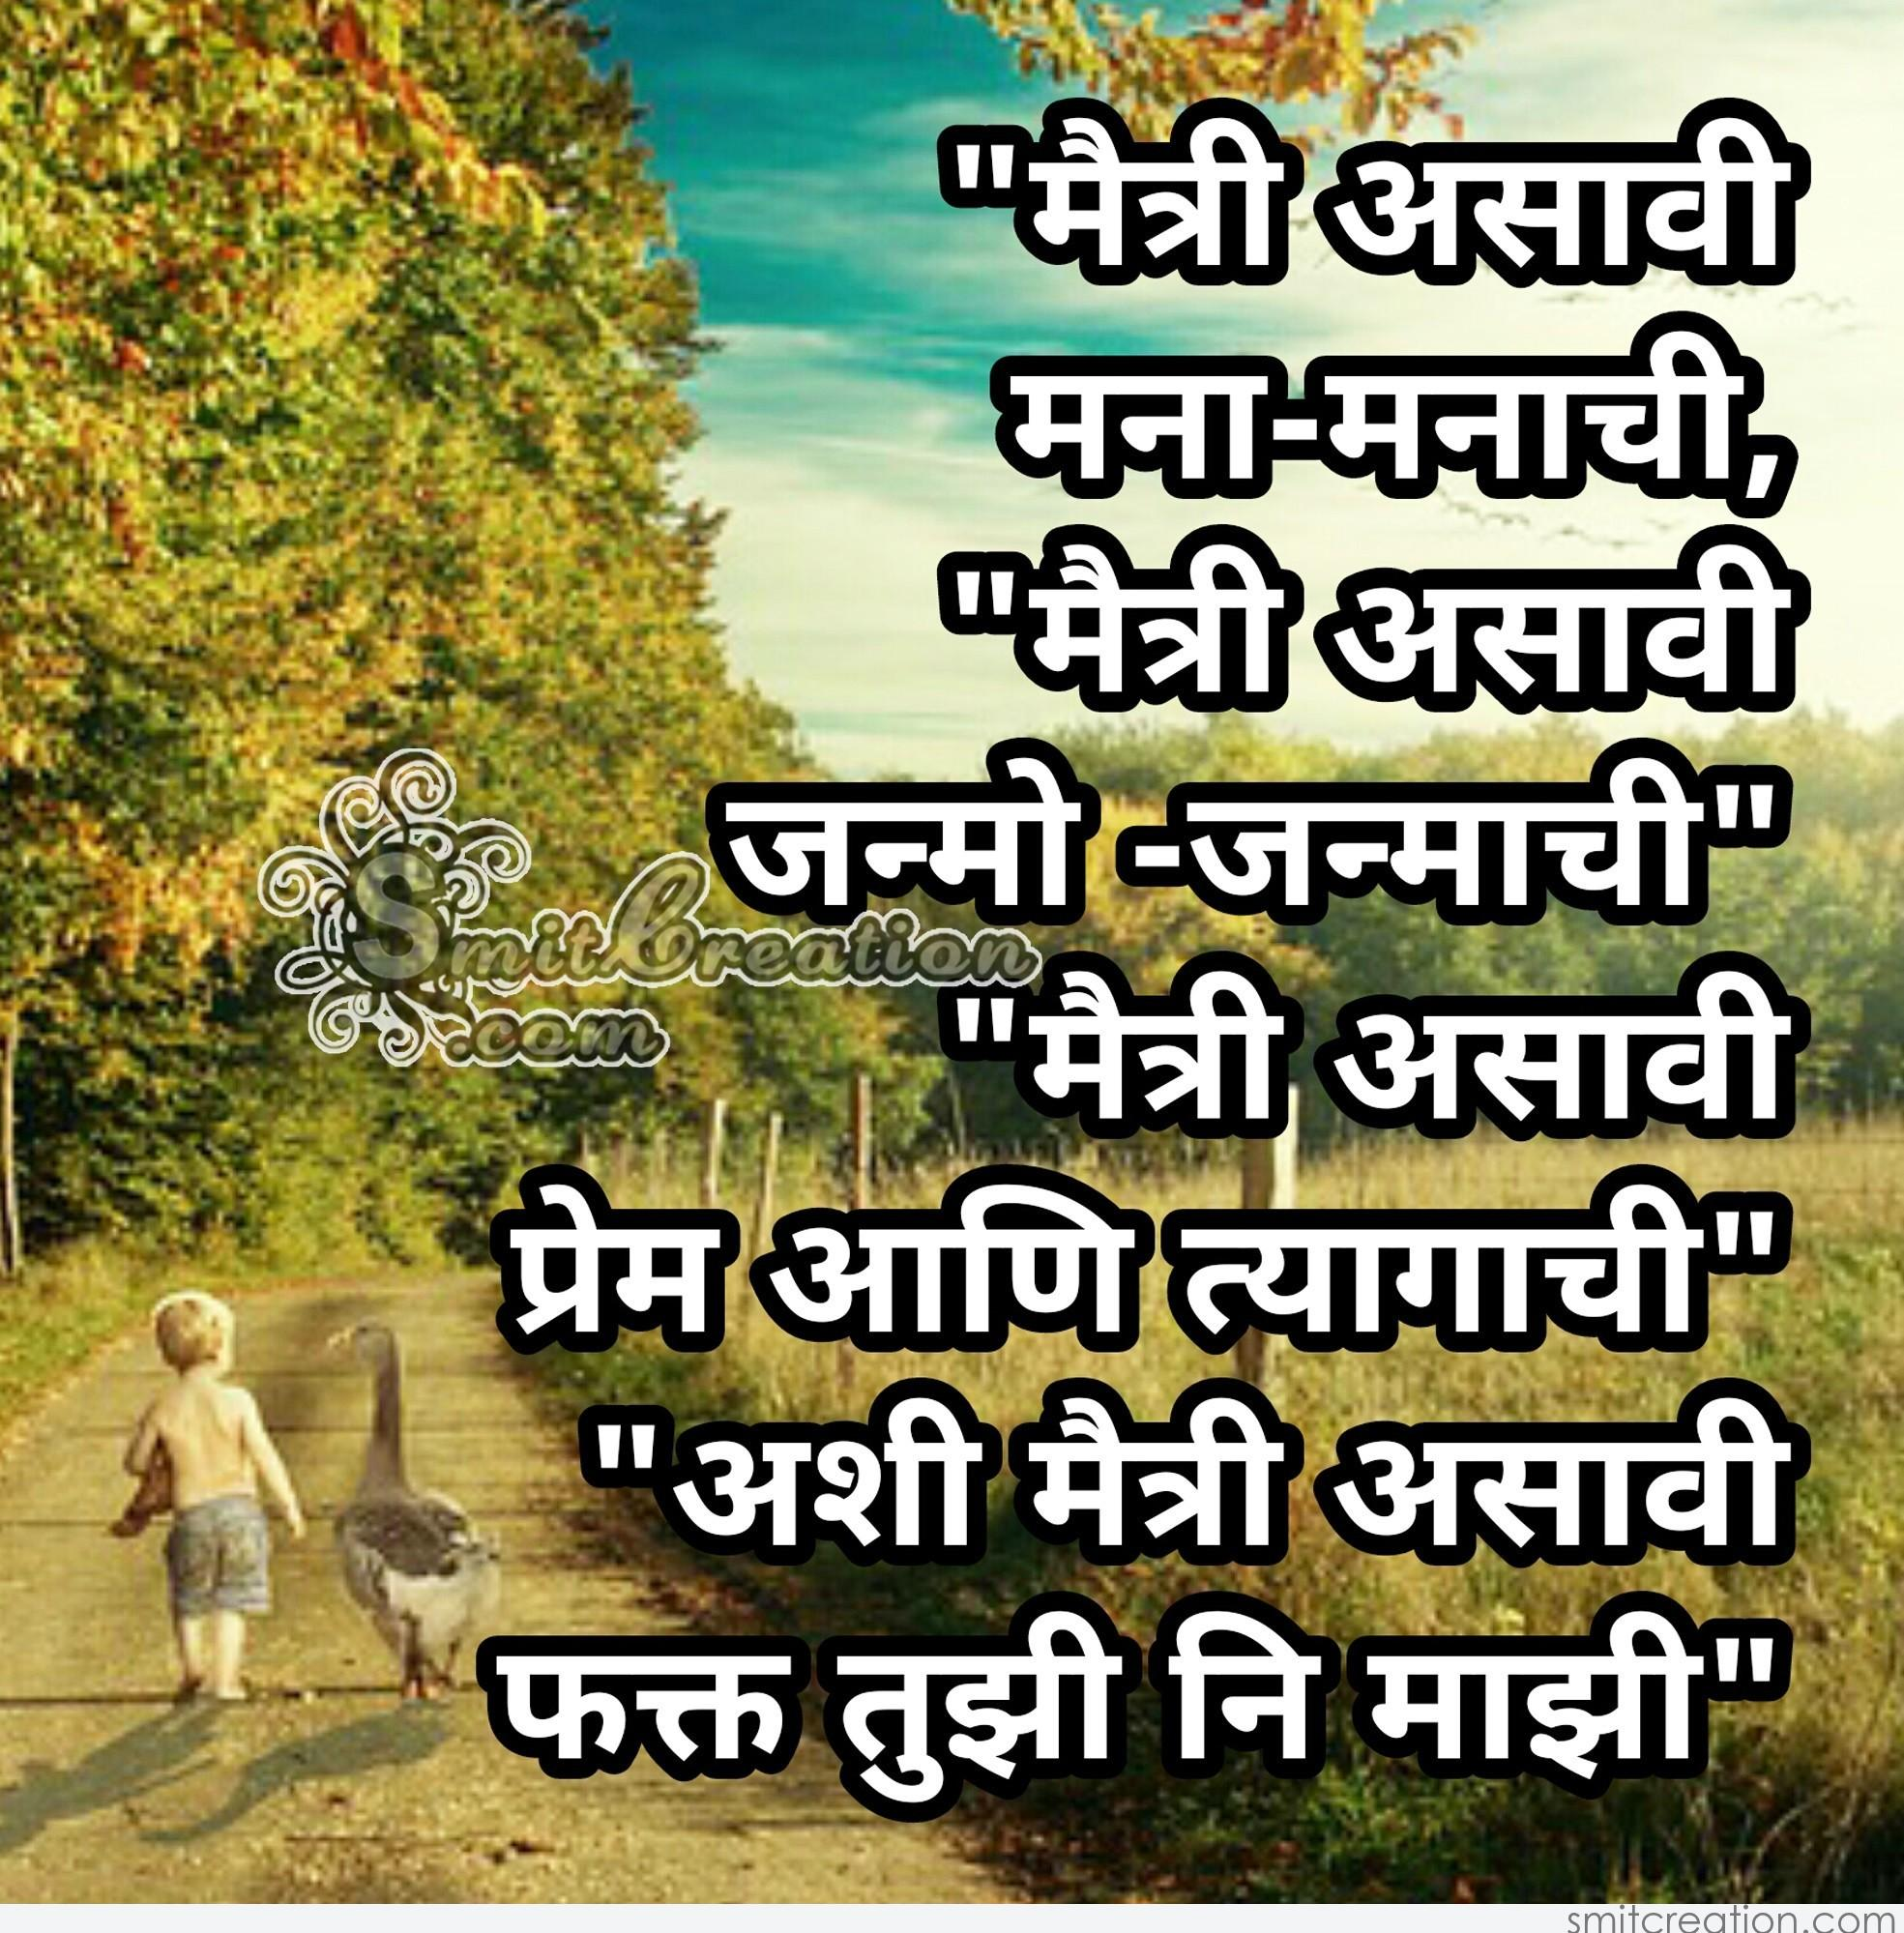 Friendship In Marathi Pictures And Graphics Smitcreation Page 5